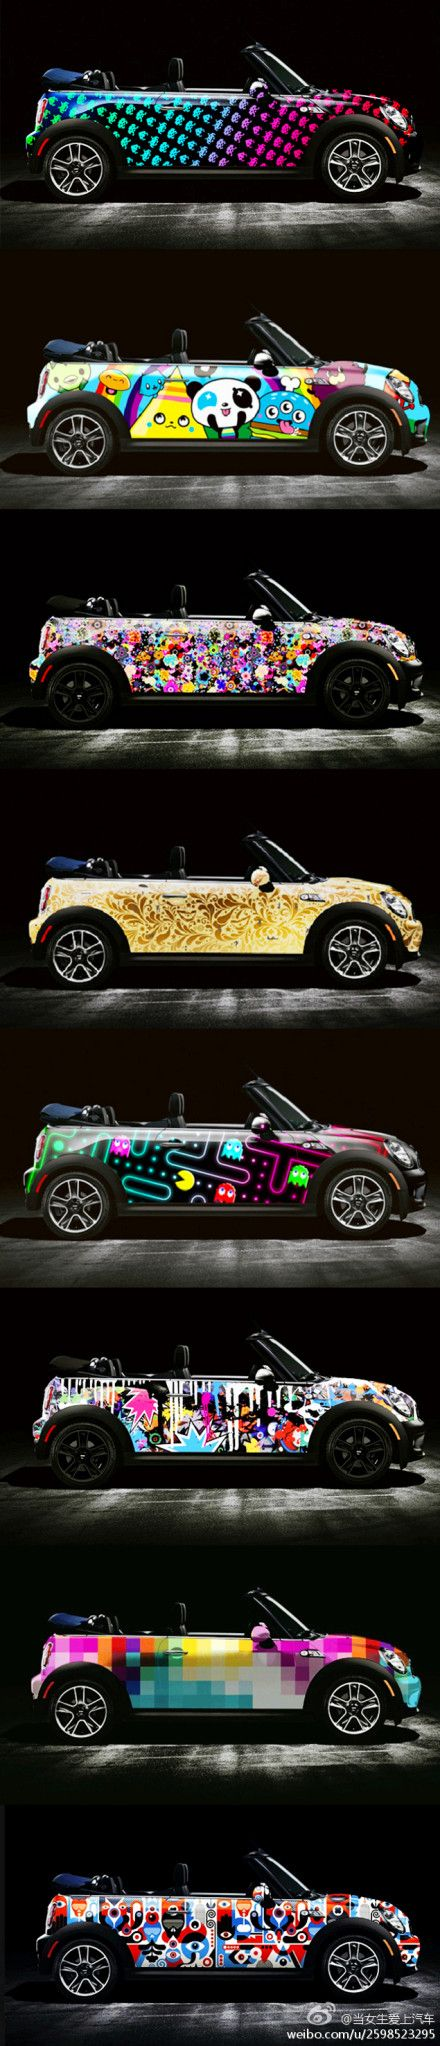 Pin By Valeria Canales On Detalles Mini Coupe Mini Cooper